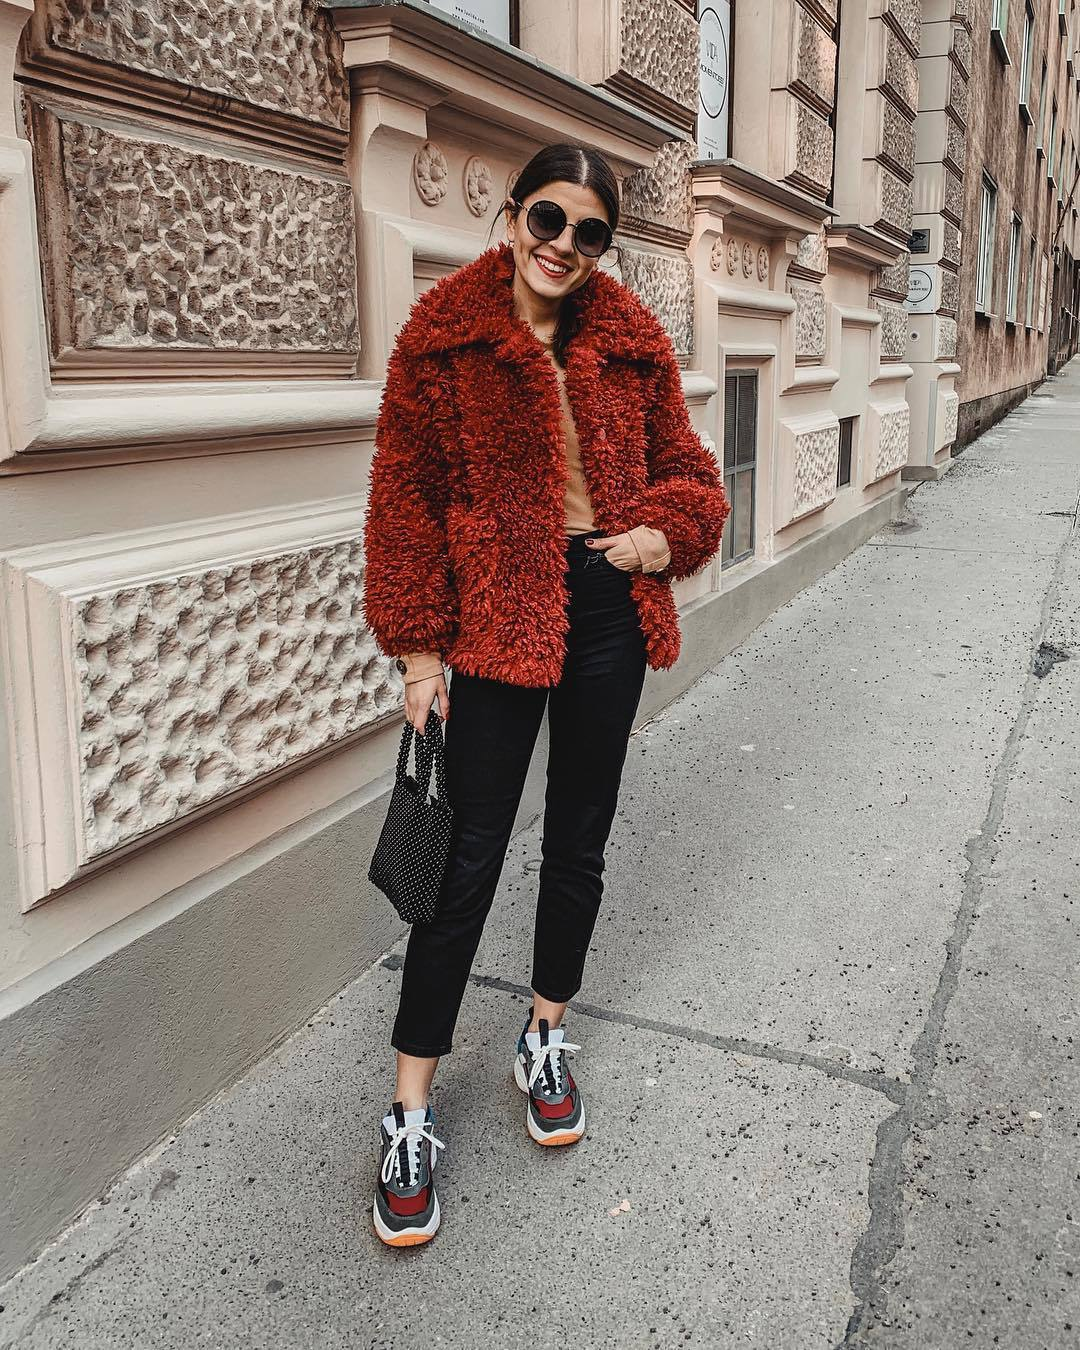 jeans black skinny jeans cropped jeans sneakers black bag hadnbag fuzzy coat sweater sunglasses